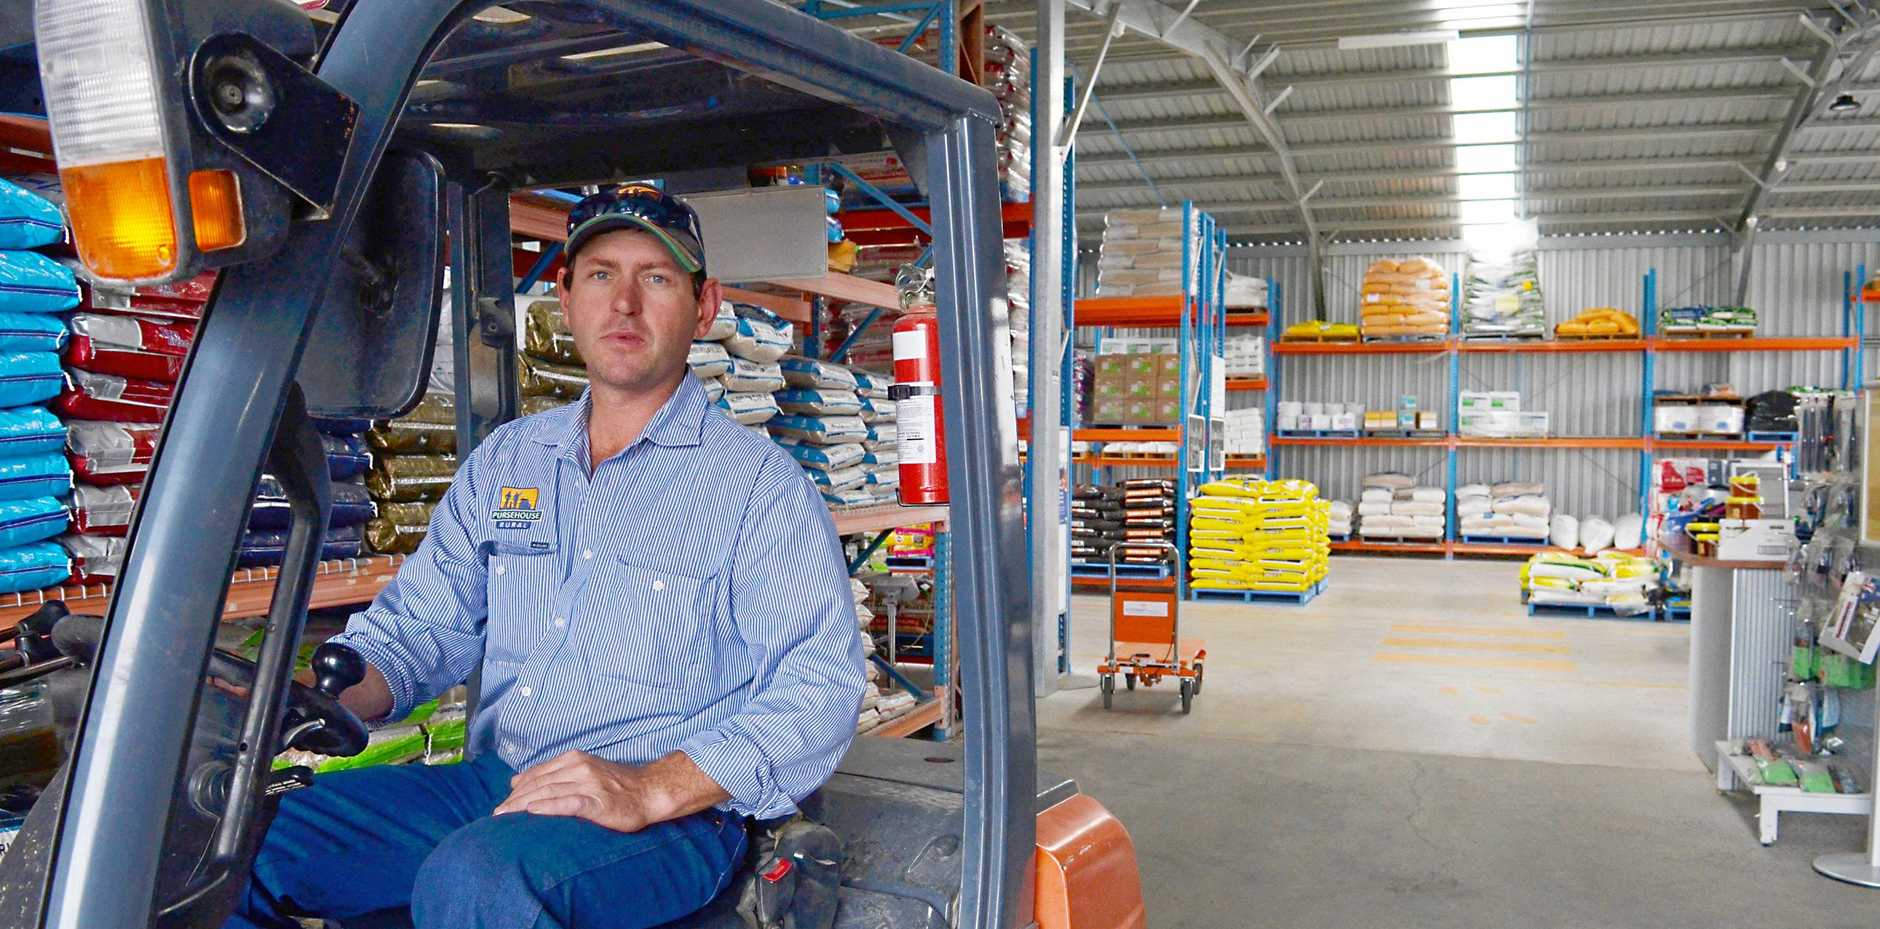 FARMERS STRUGGLING: Pursehouse Rural manager Ben Ree said tax breaks in the Federal Budget won't help his business much. The drought hit his customers hard and most farmers are not paying tax, so they cannot claim a concession.